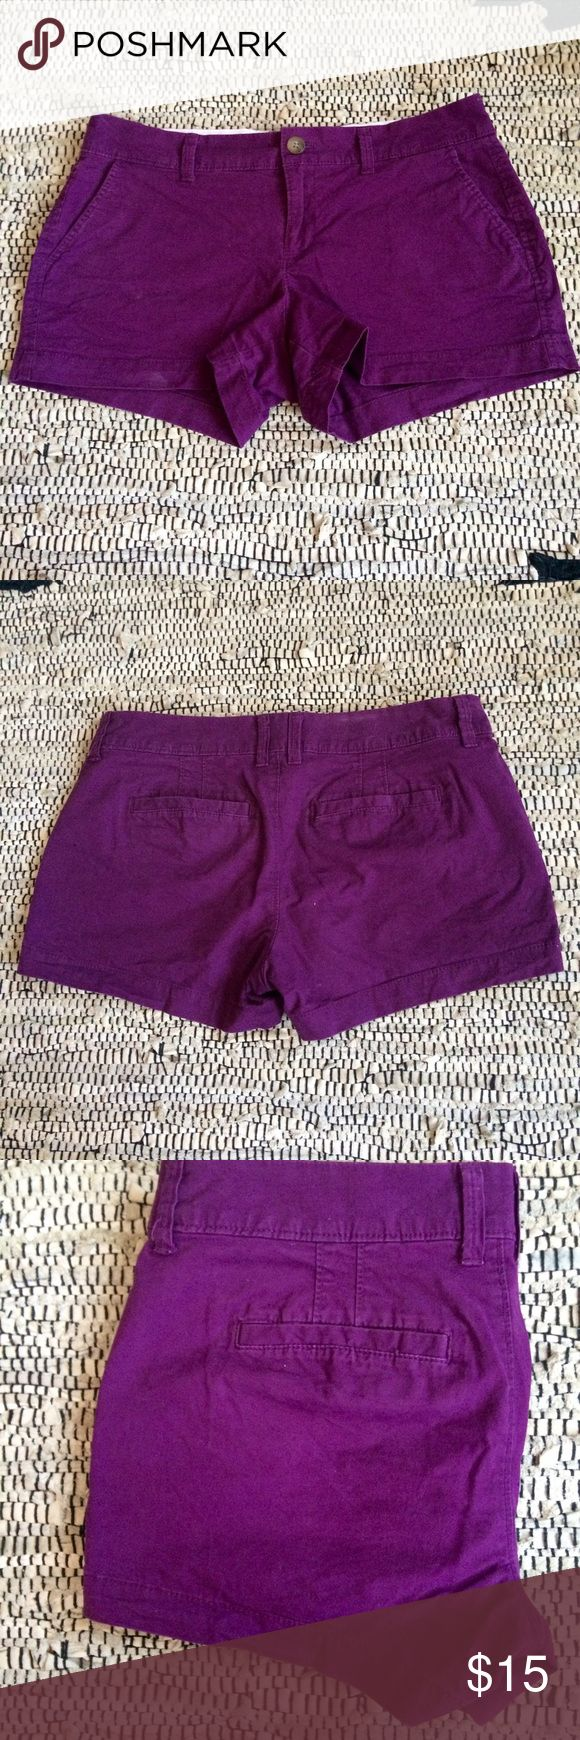 Old Navy purple chino shorts Plum/Eggplant/Dark purple shorts from old navy. Size 2 Old Navy Shorts